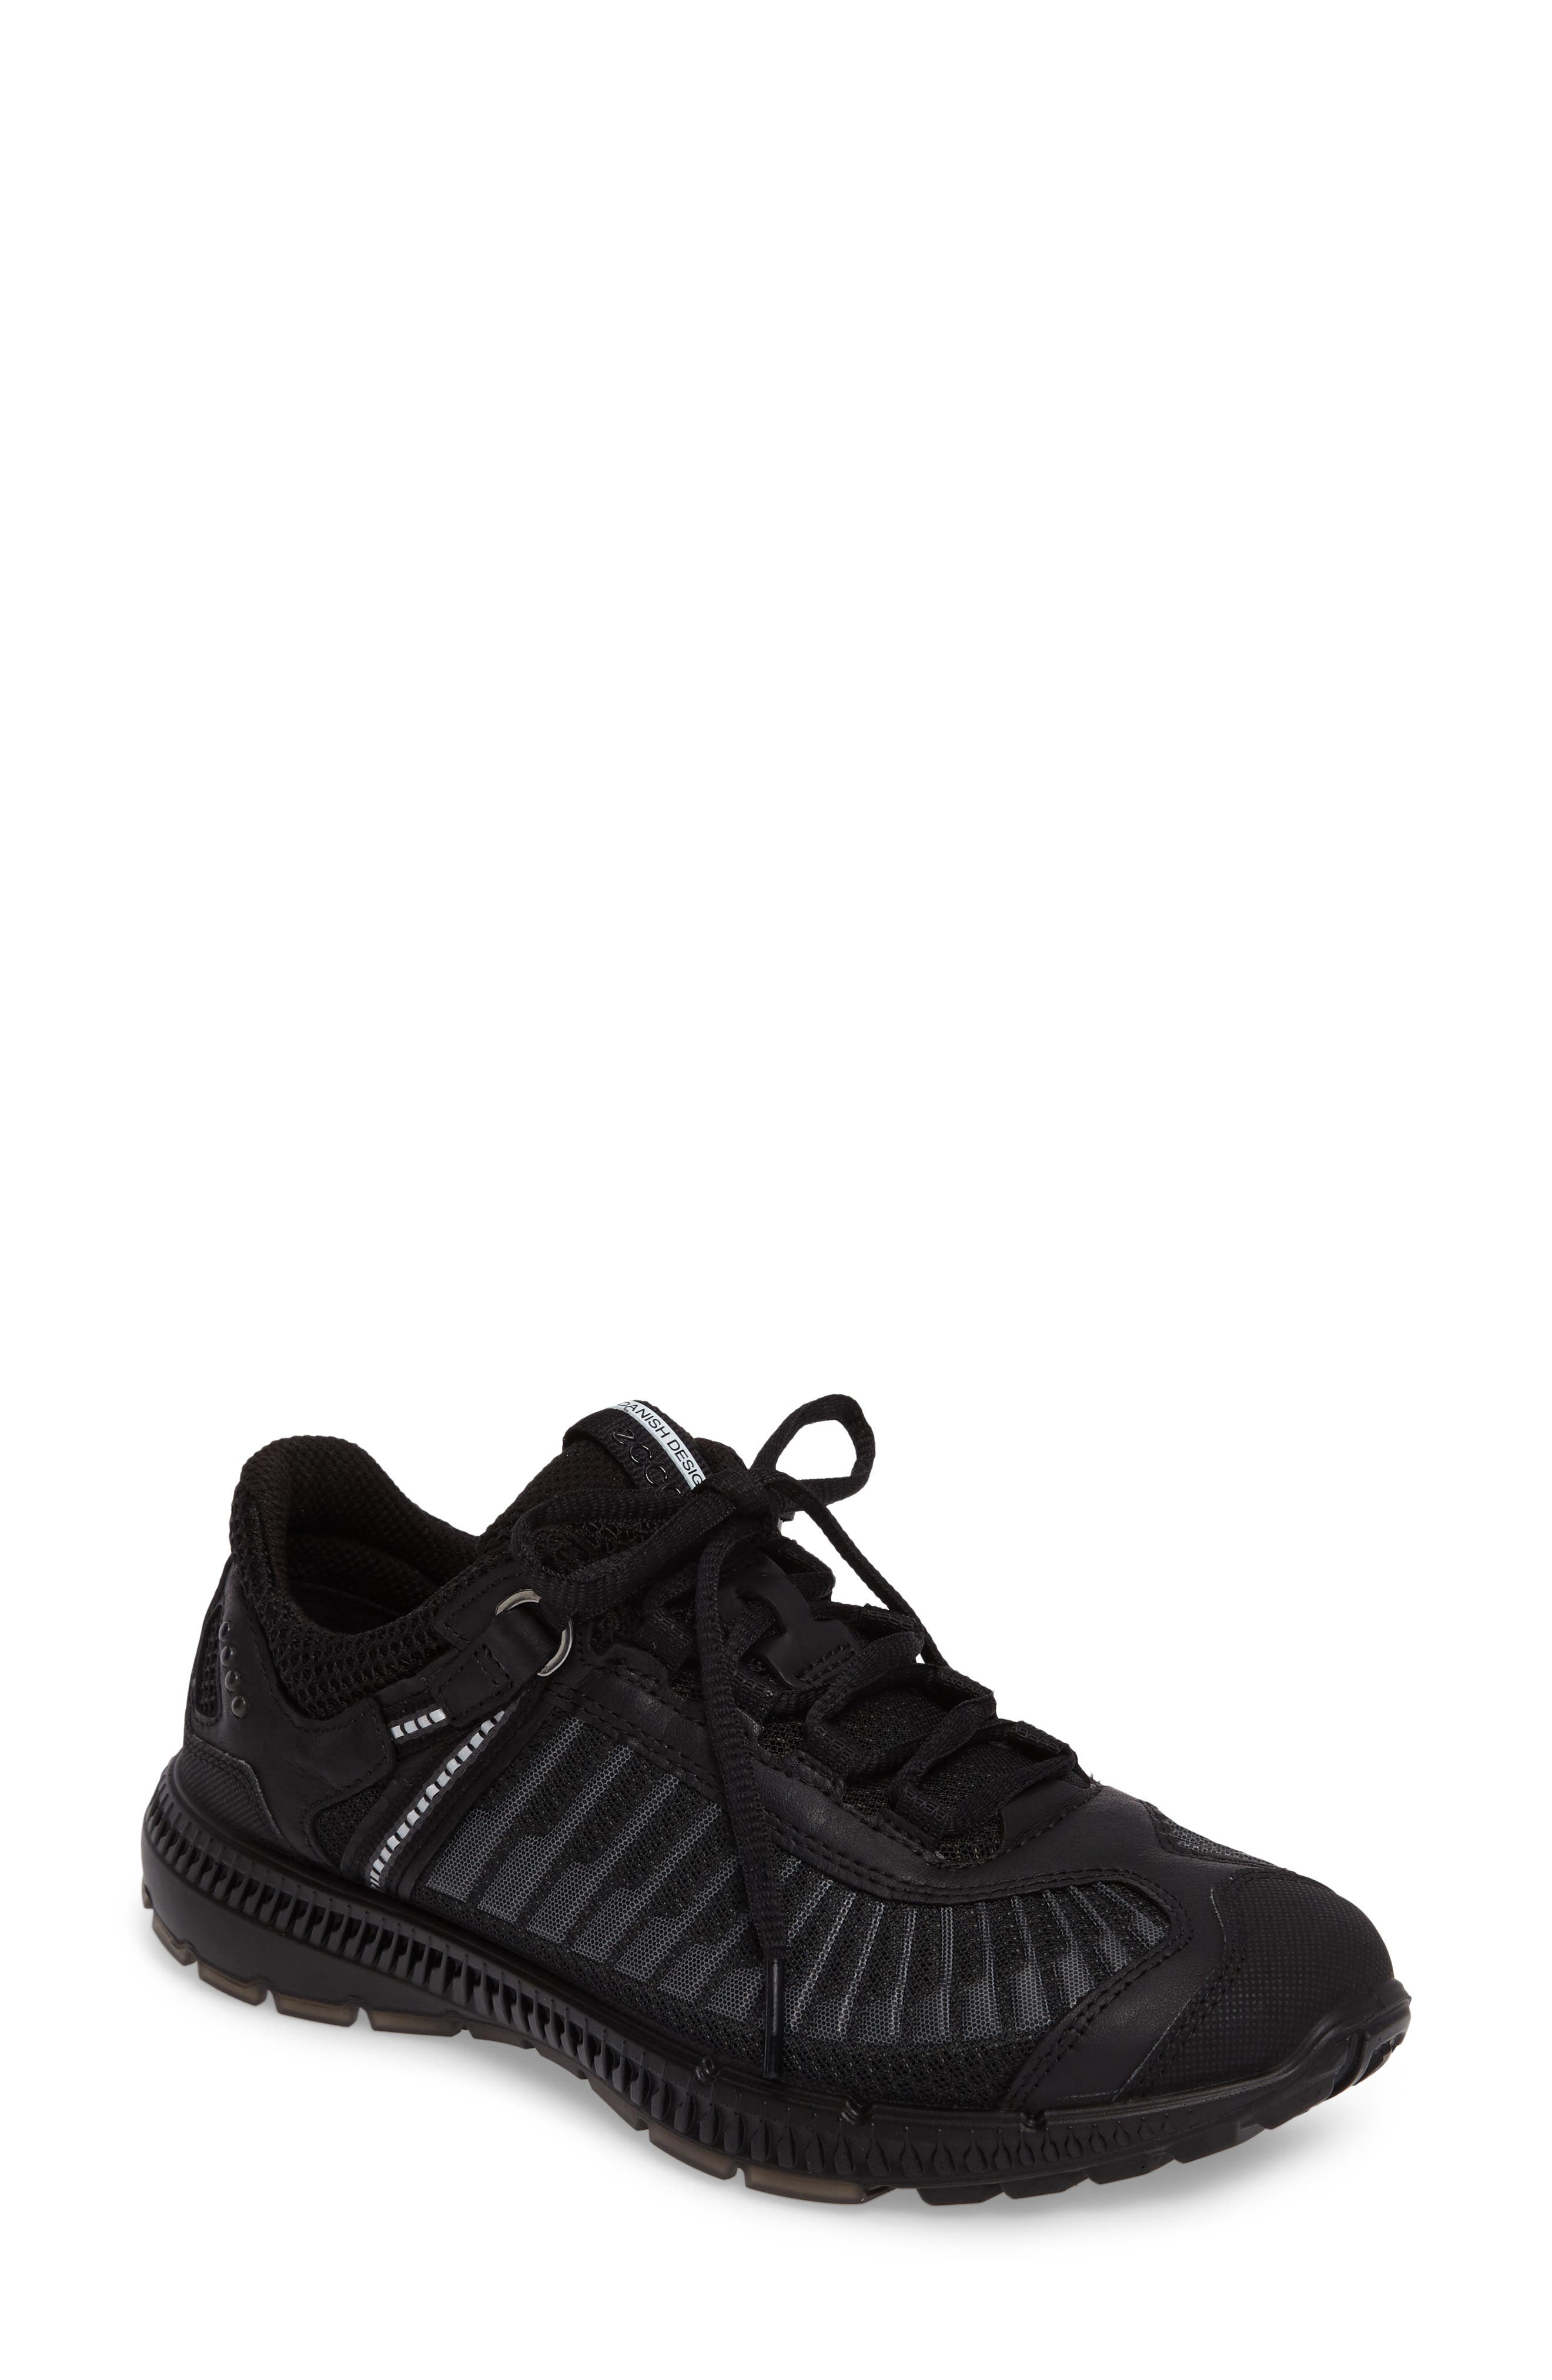 Intrinsic TR Running Shoe,                         Main,                         color, Black Leather